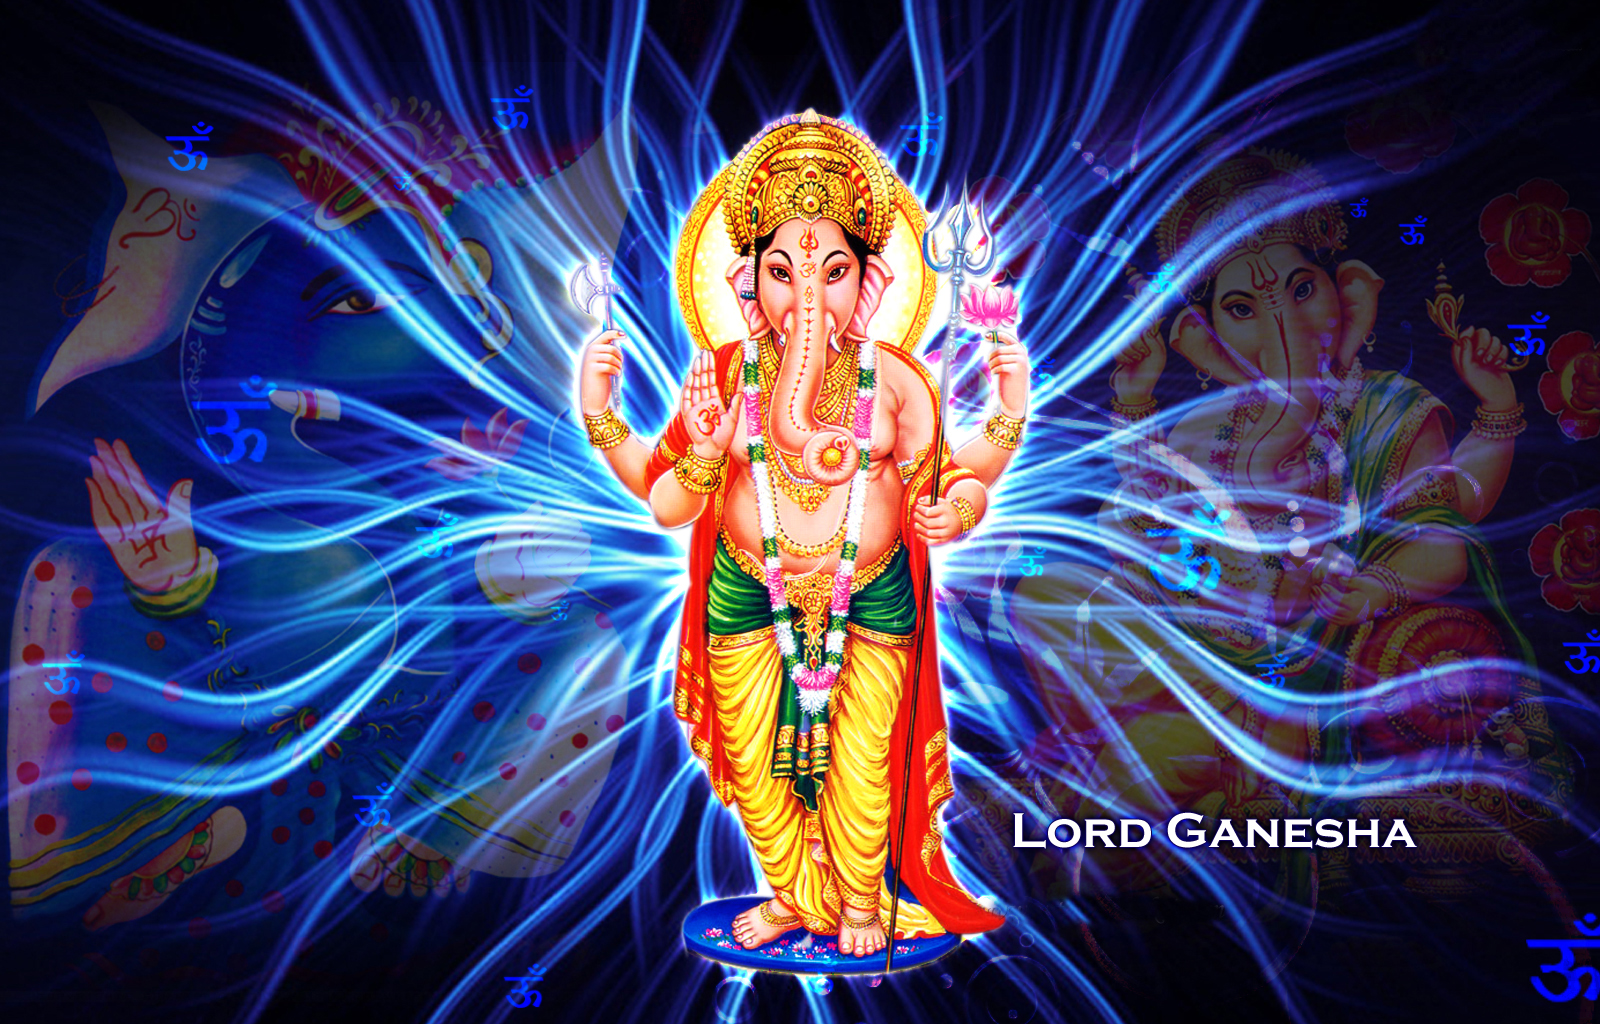 Description Download Lord Ganesha HD Artificial Creation Wallpapers